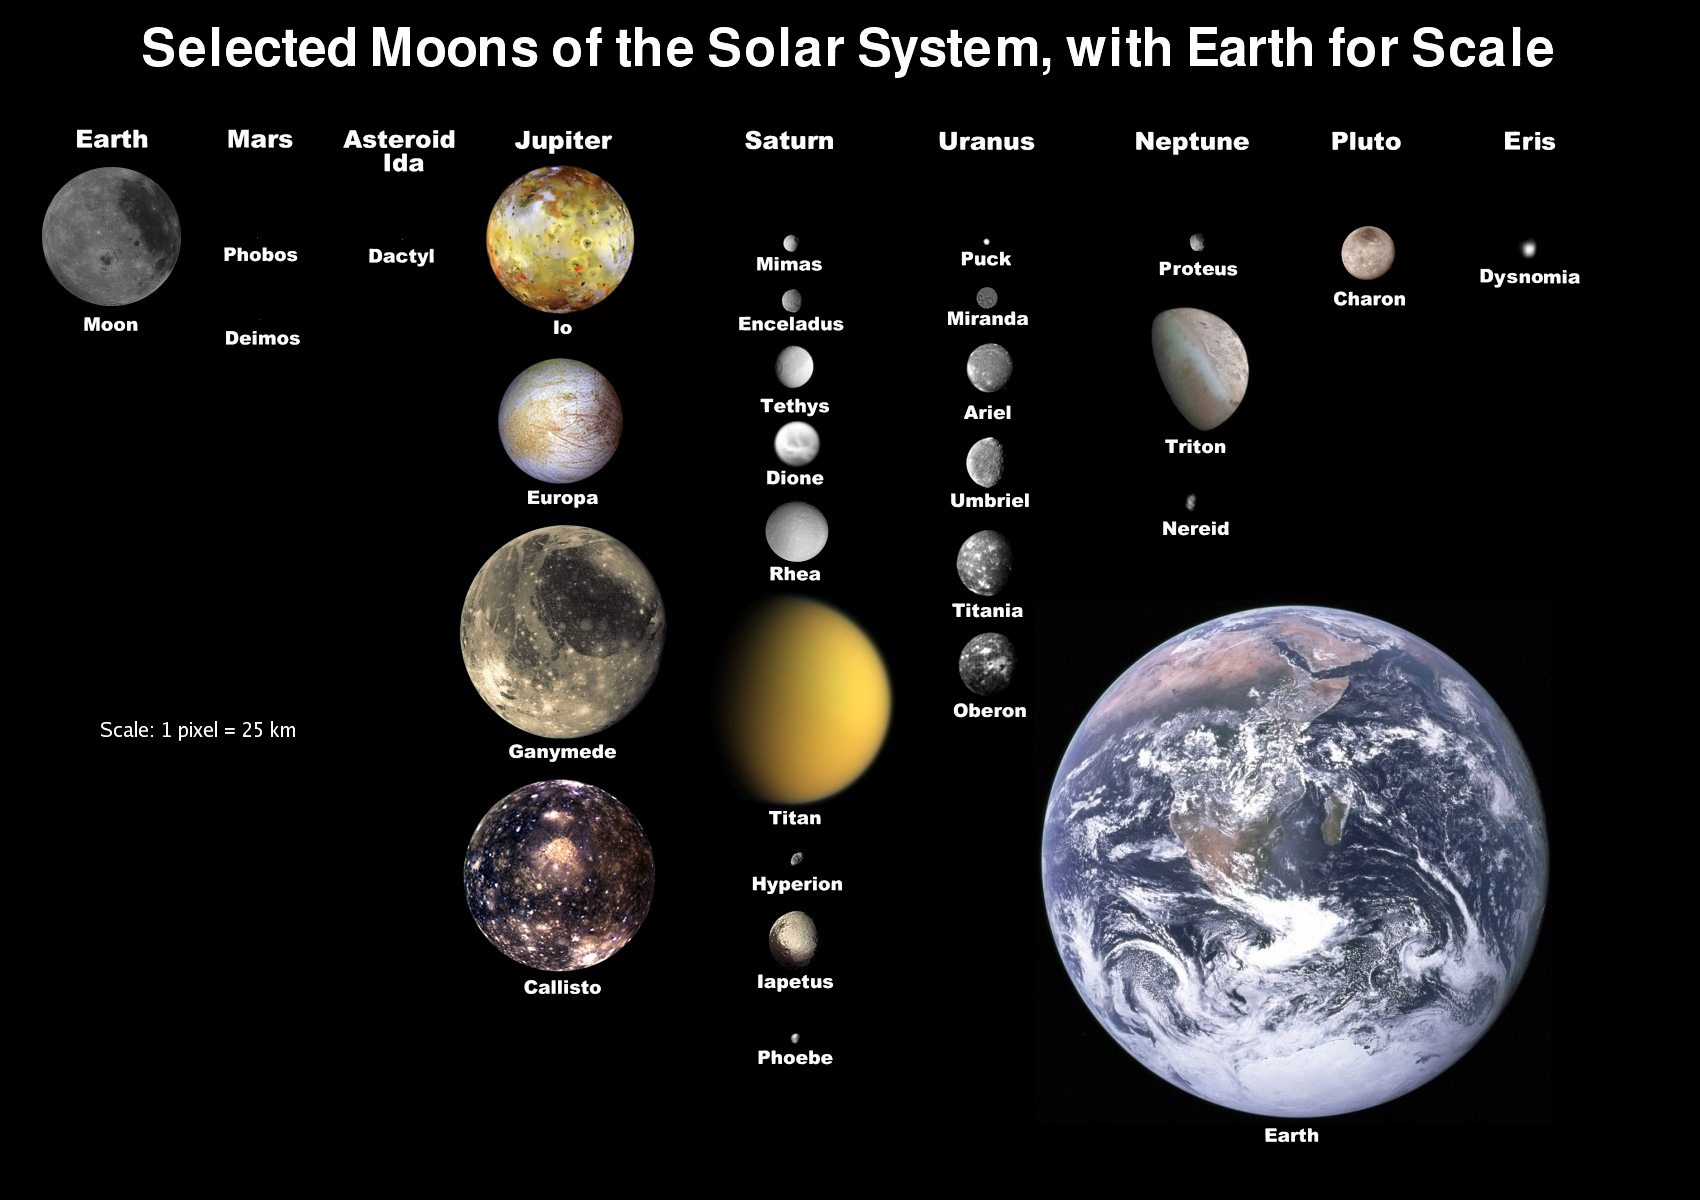 The moons of solar system, showed to scale with Earth's Moon. - Image Credit: NASA